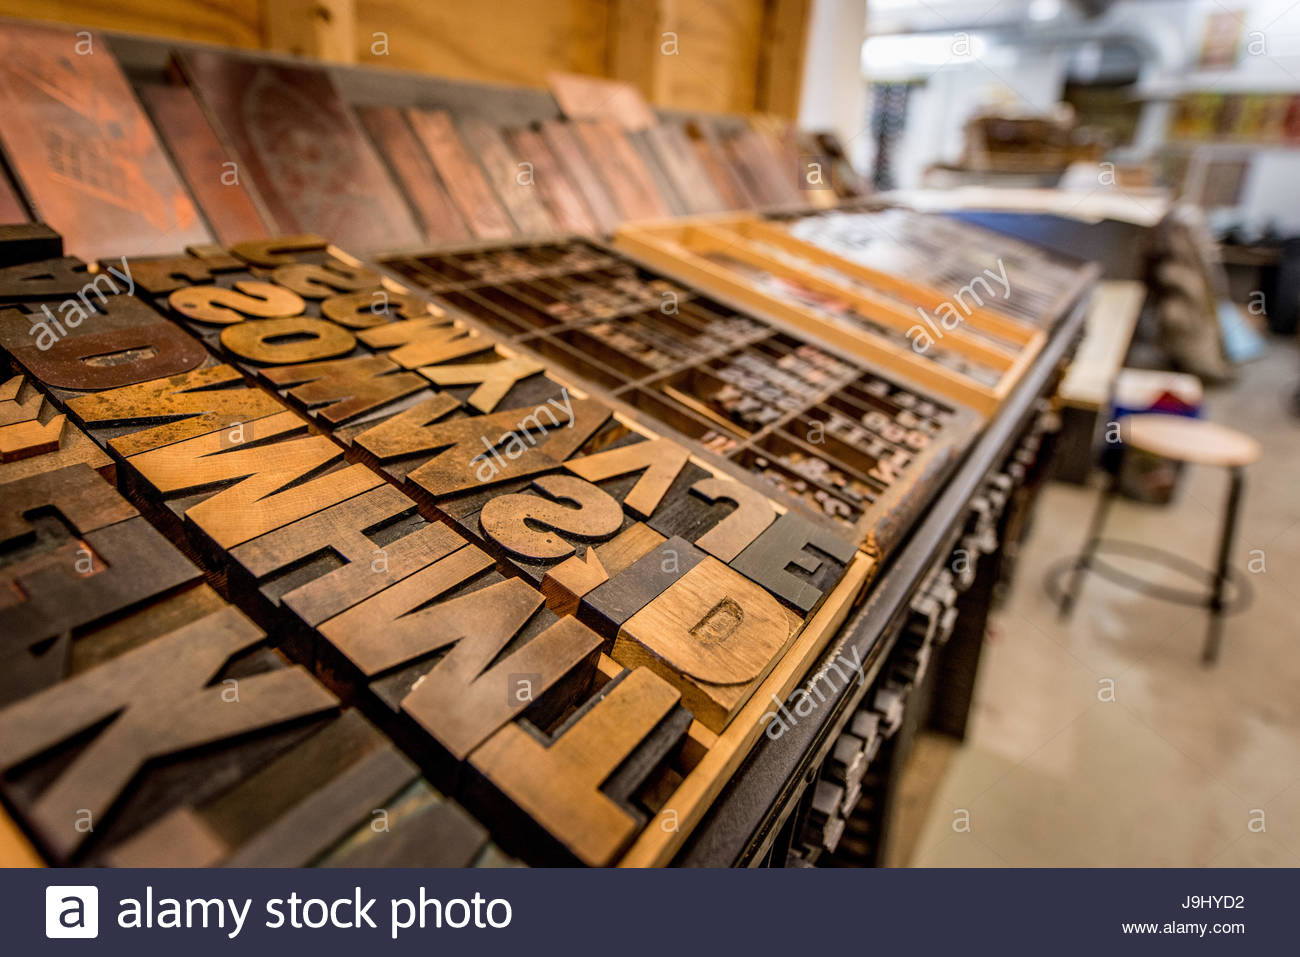 Letter Press blocks at Pyramid Atlantic Arts Center, in Silver Spring, Maryland. Stock Photo